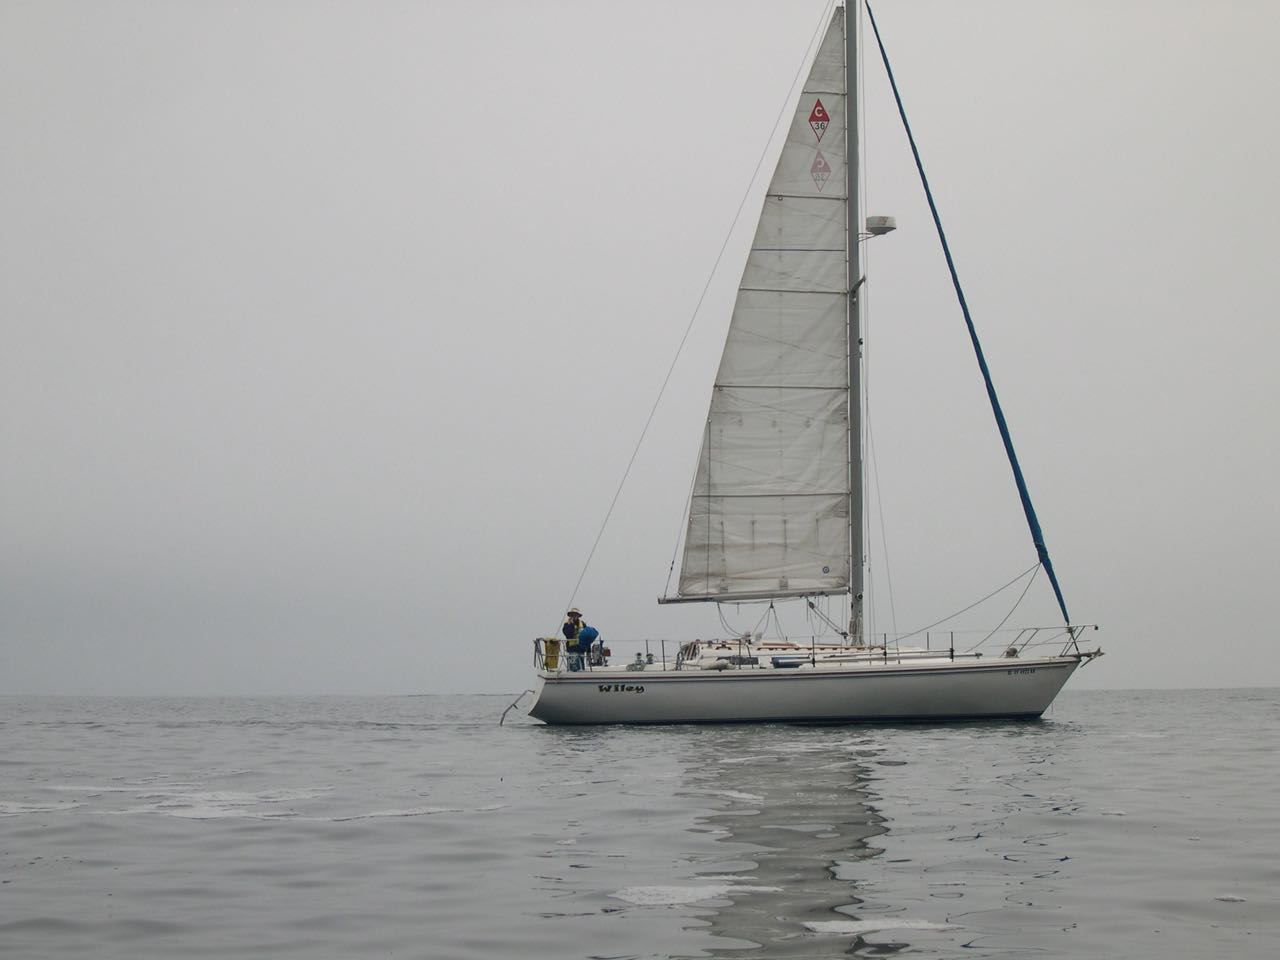 Go to Painted Cave with Capt. Dan Ryder and Sail Channel Islands